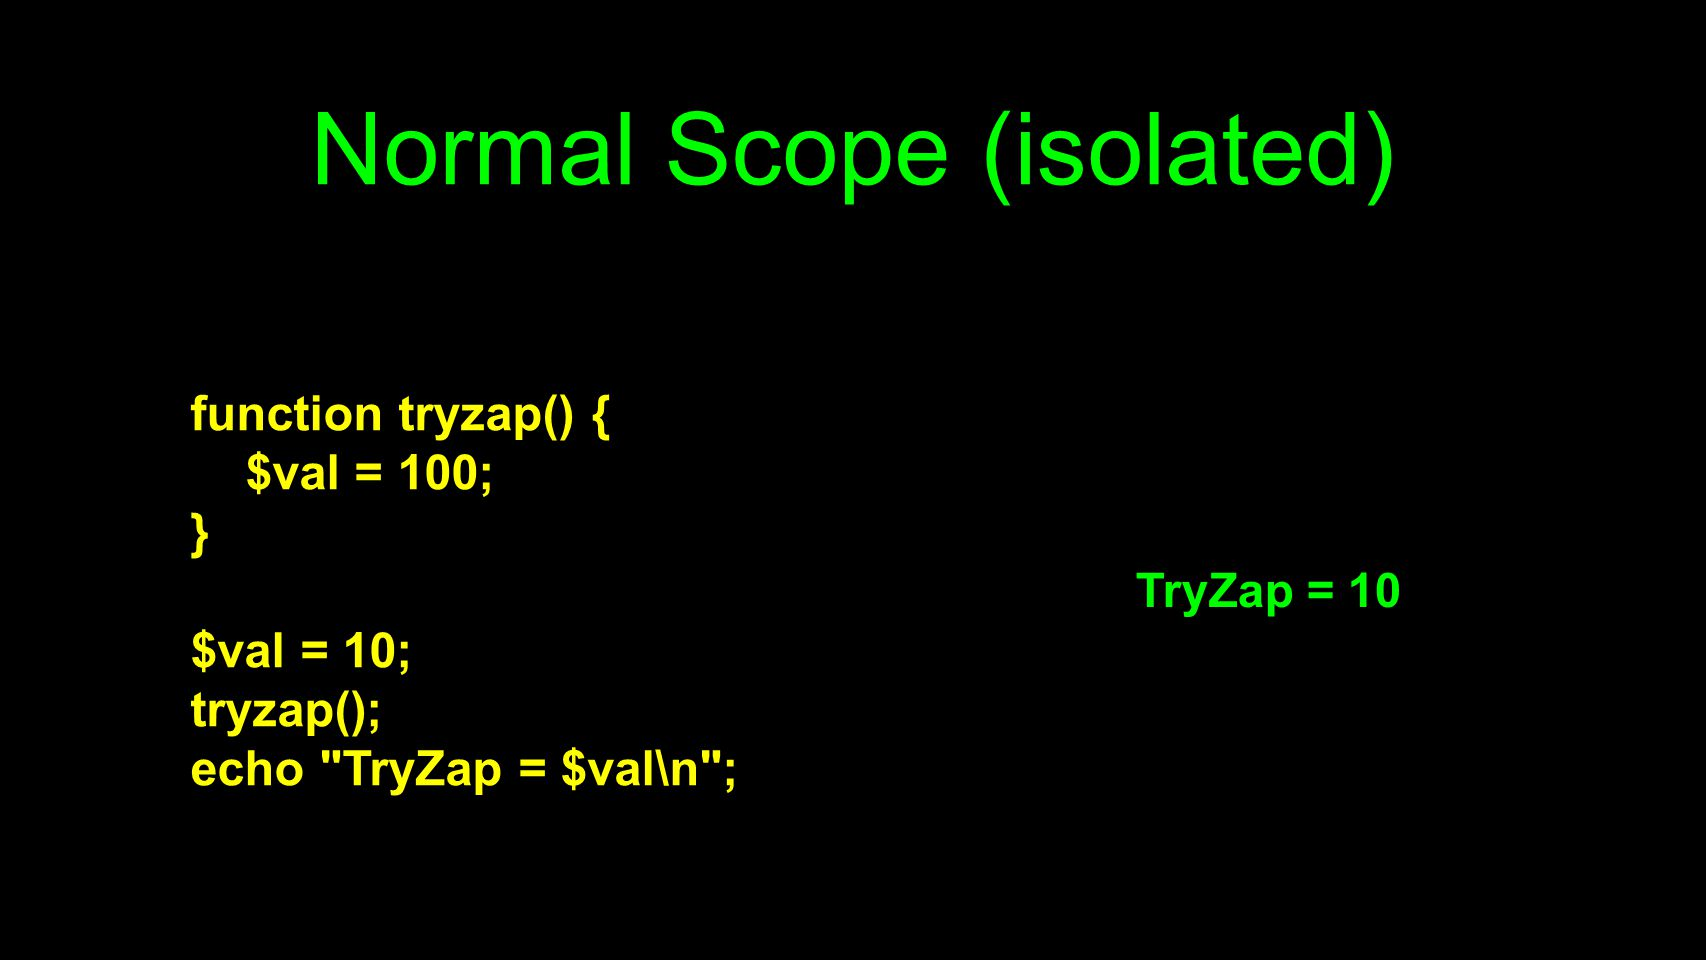 Normal Scope (isolated) function tryzap() { $val = 100; } $val = 10; tryzap(); echo